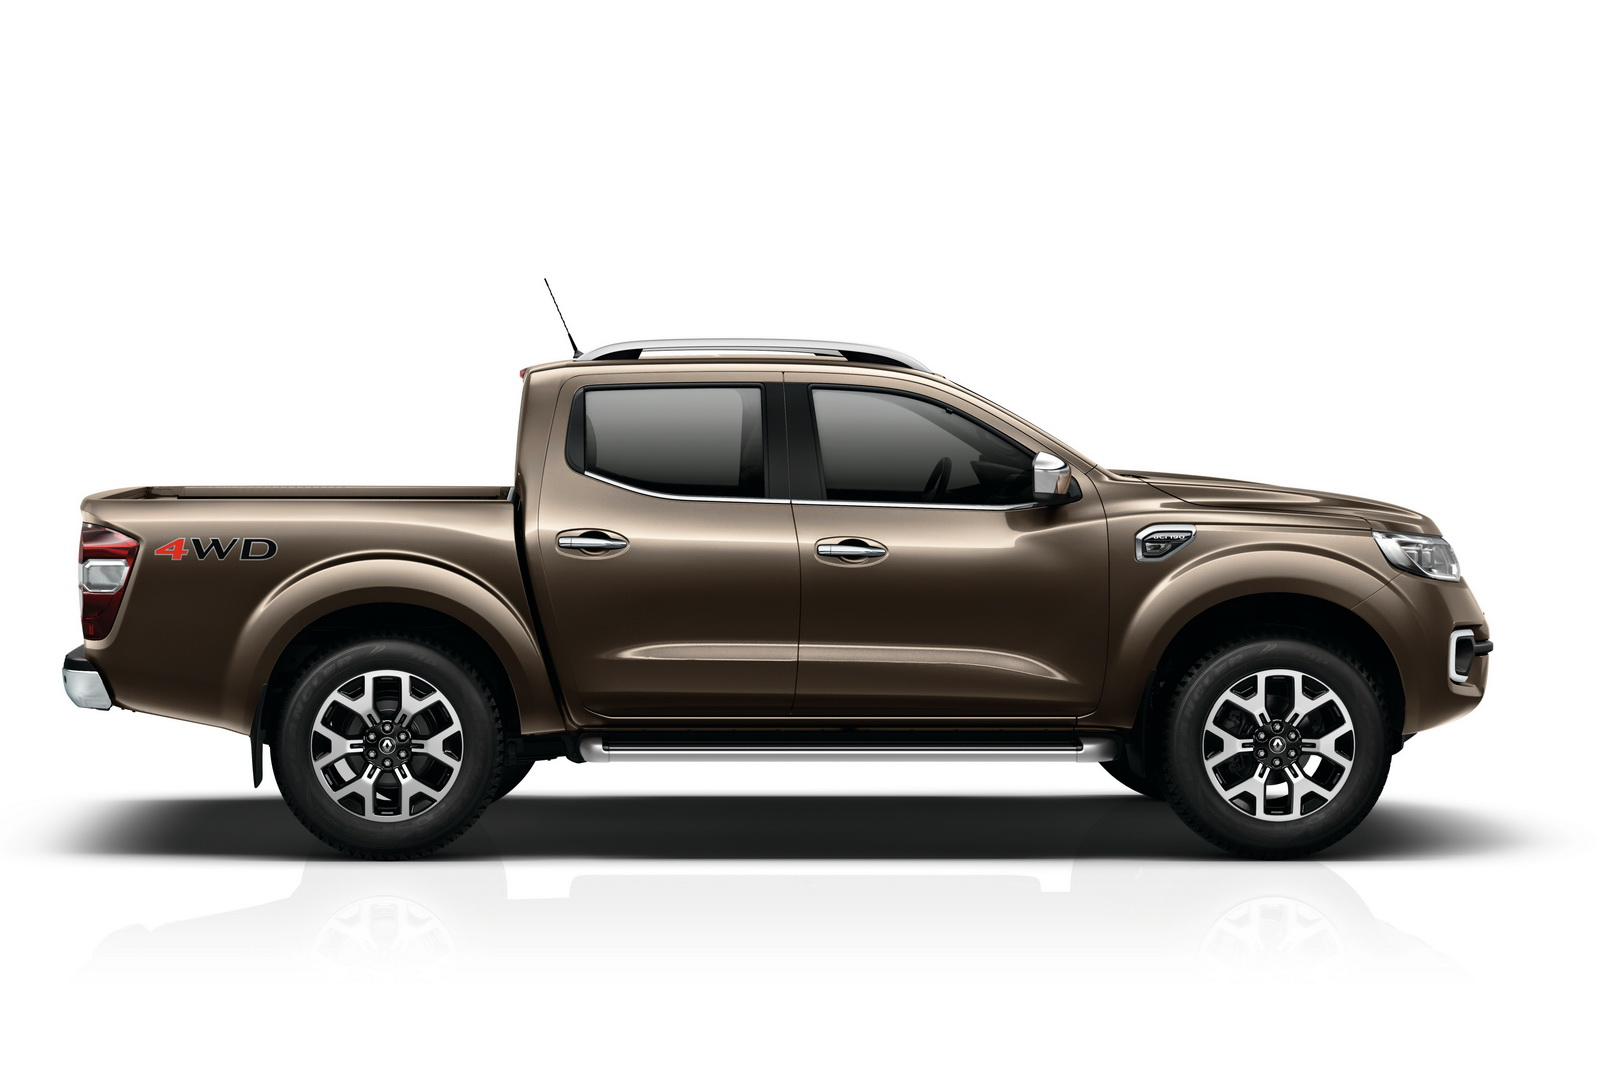 renault pulls the wraps off new alaskan pickup truck. Black Bedroom Furniture Sets. Home Design Ideas